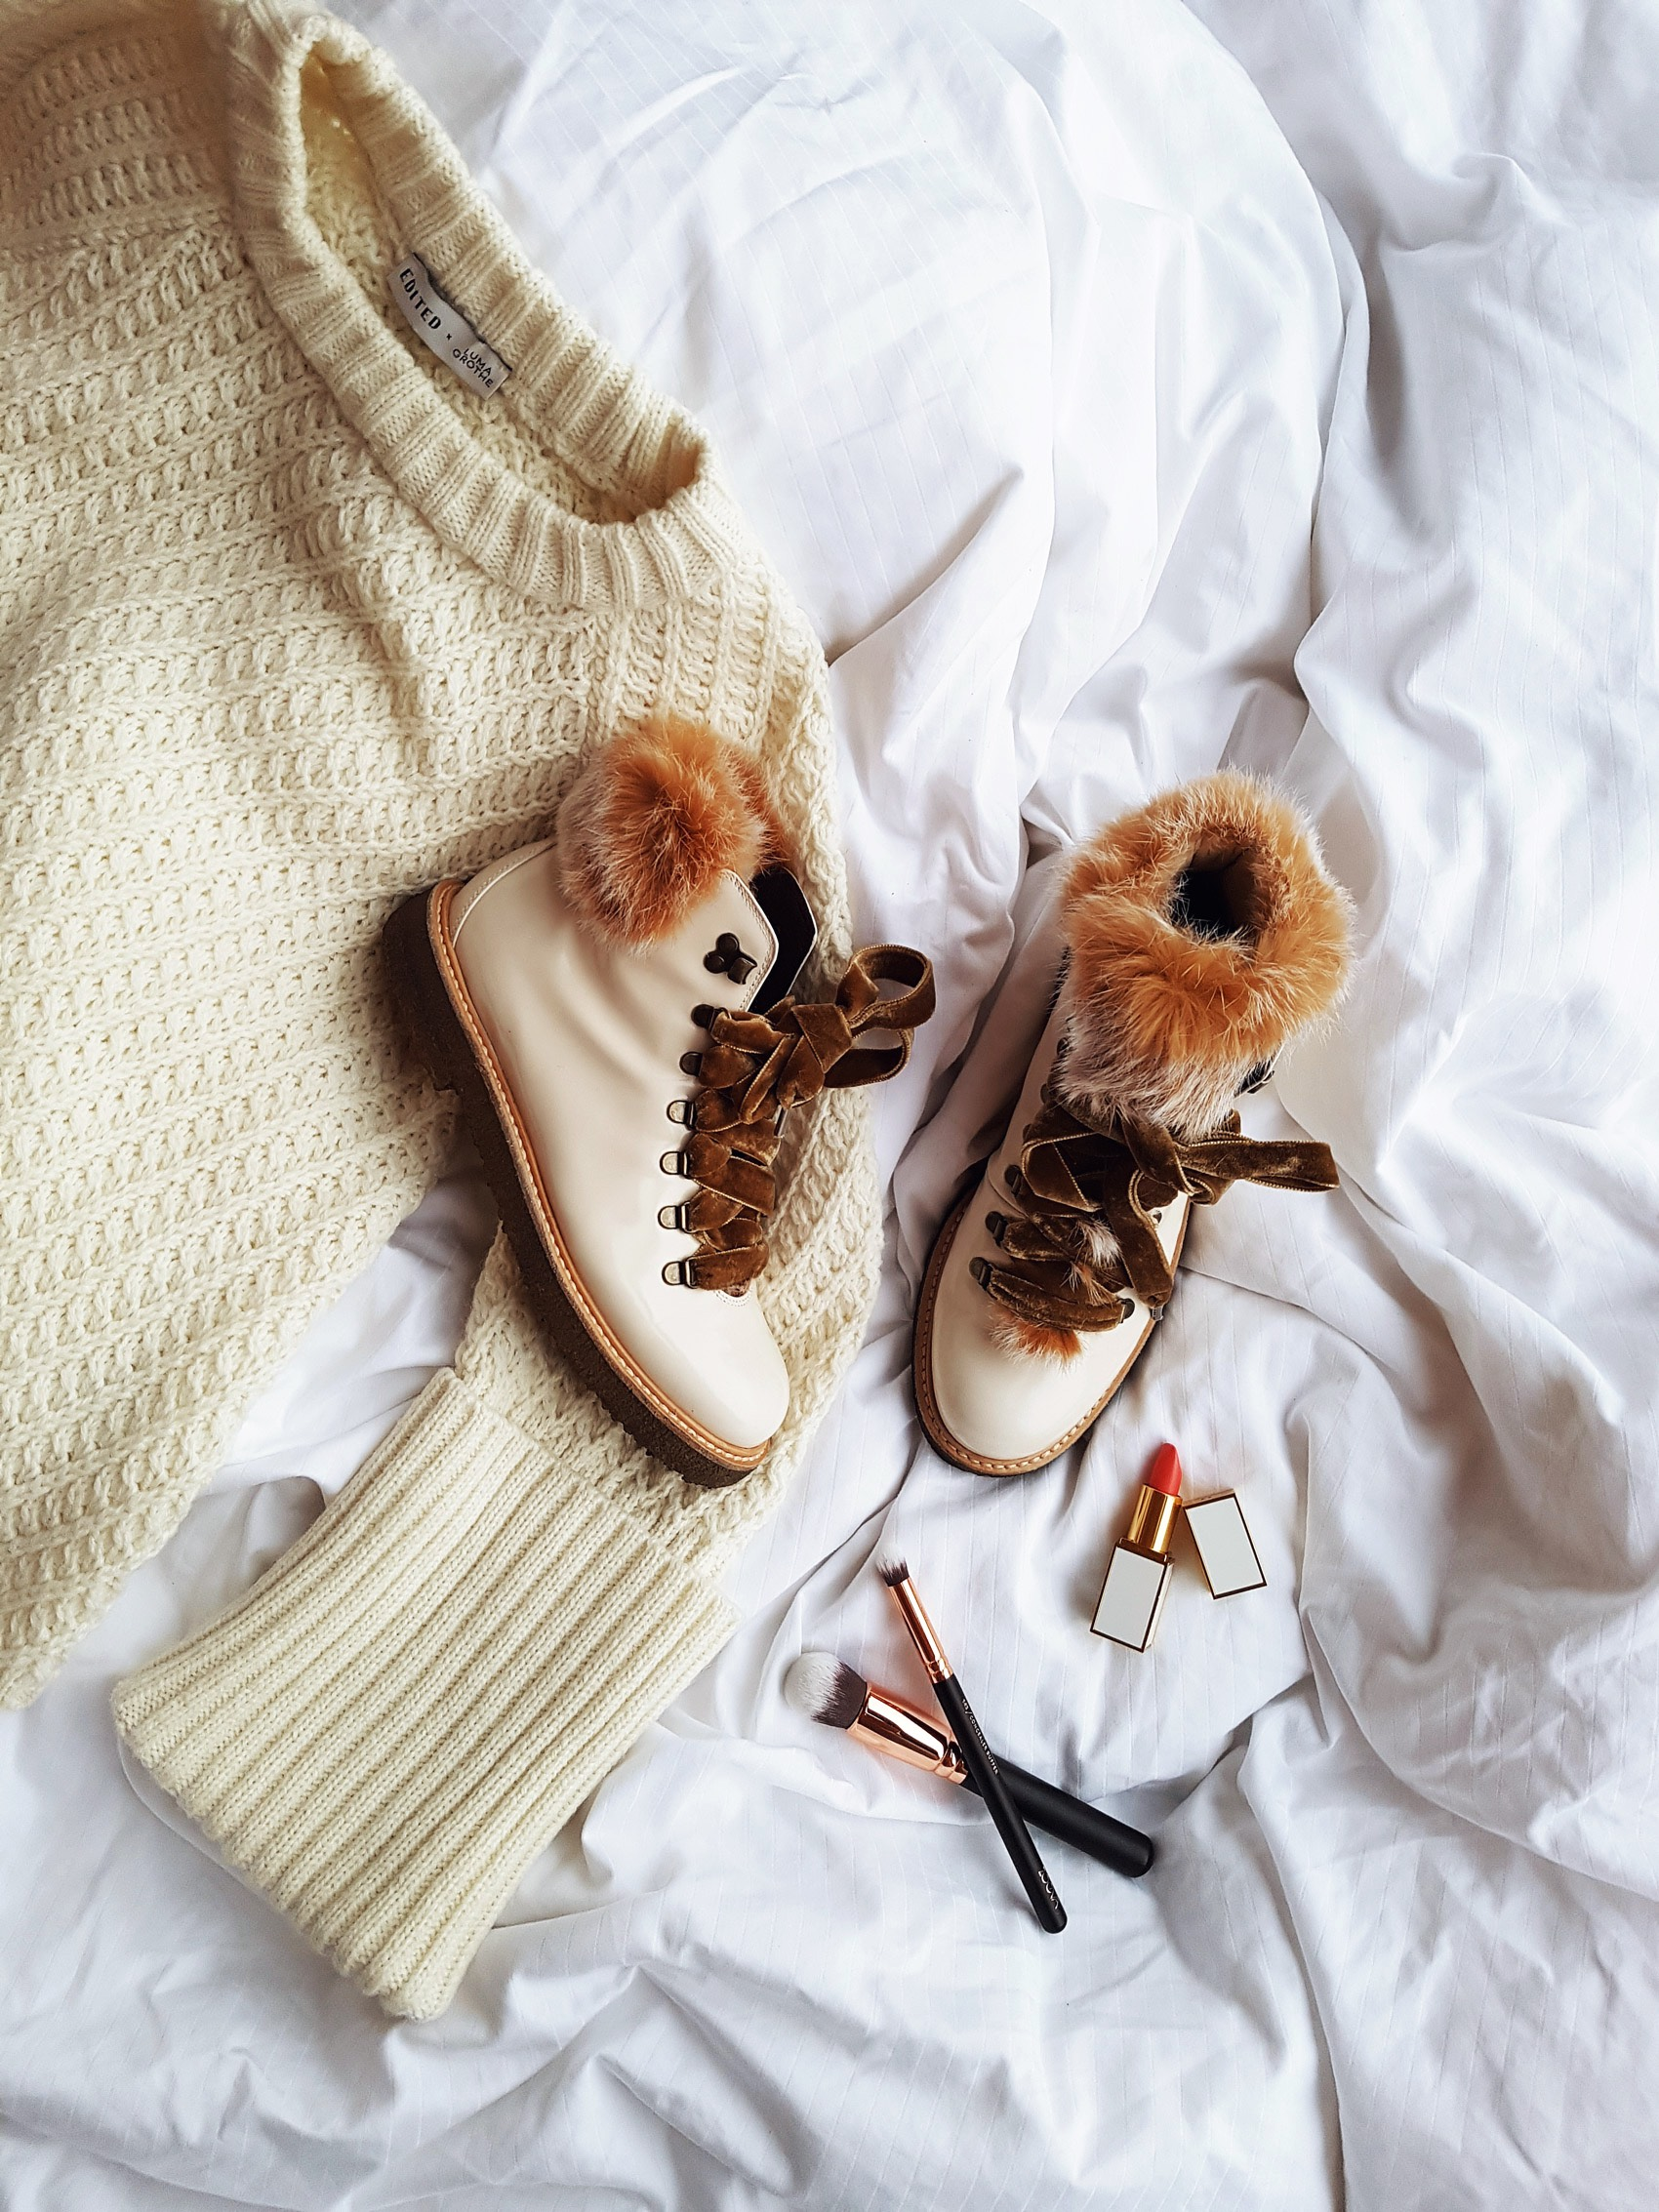 agl-fur-boots-knit-sweater-edited-the-label-pullover-zoeva-pinsel-set-fashiioncarpet